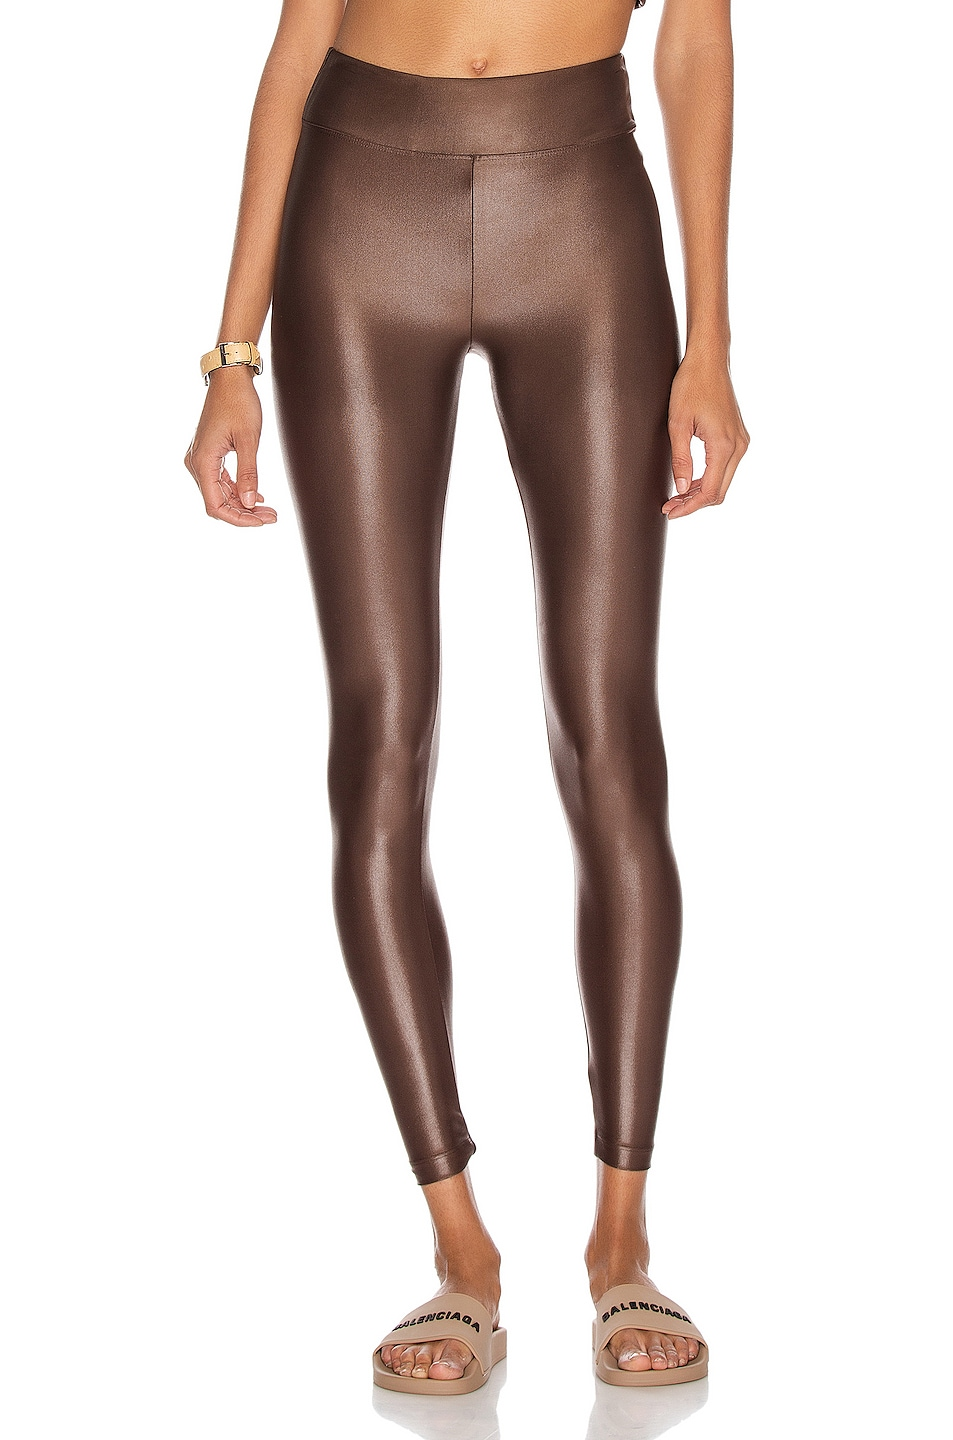 Image 1 of KORAL Lustrous High Rise Infinity Legging in Cafe